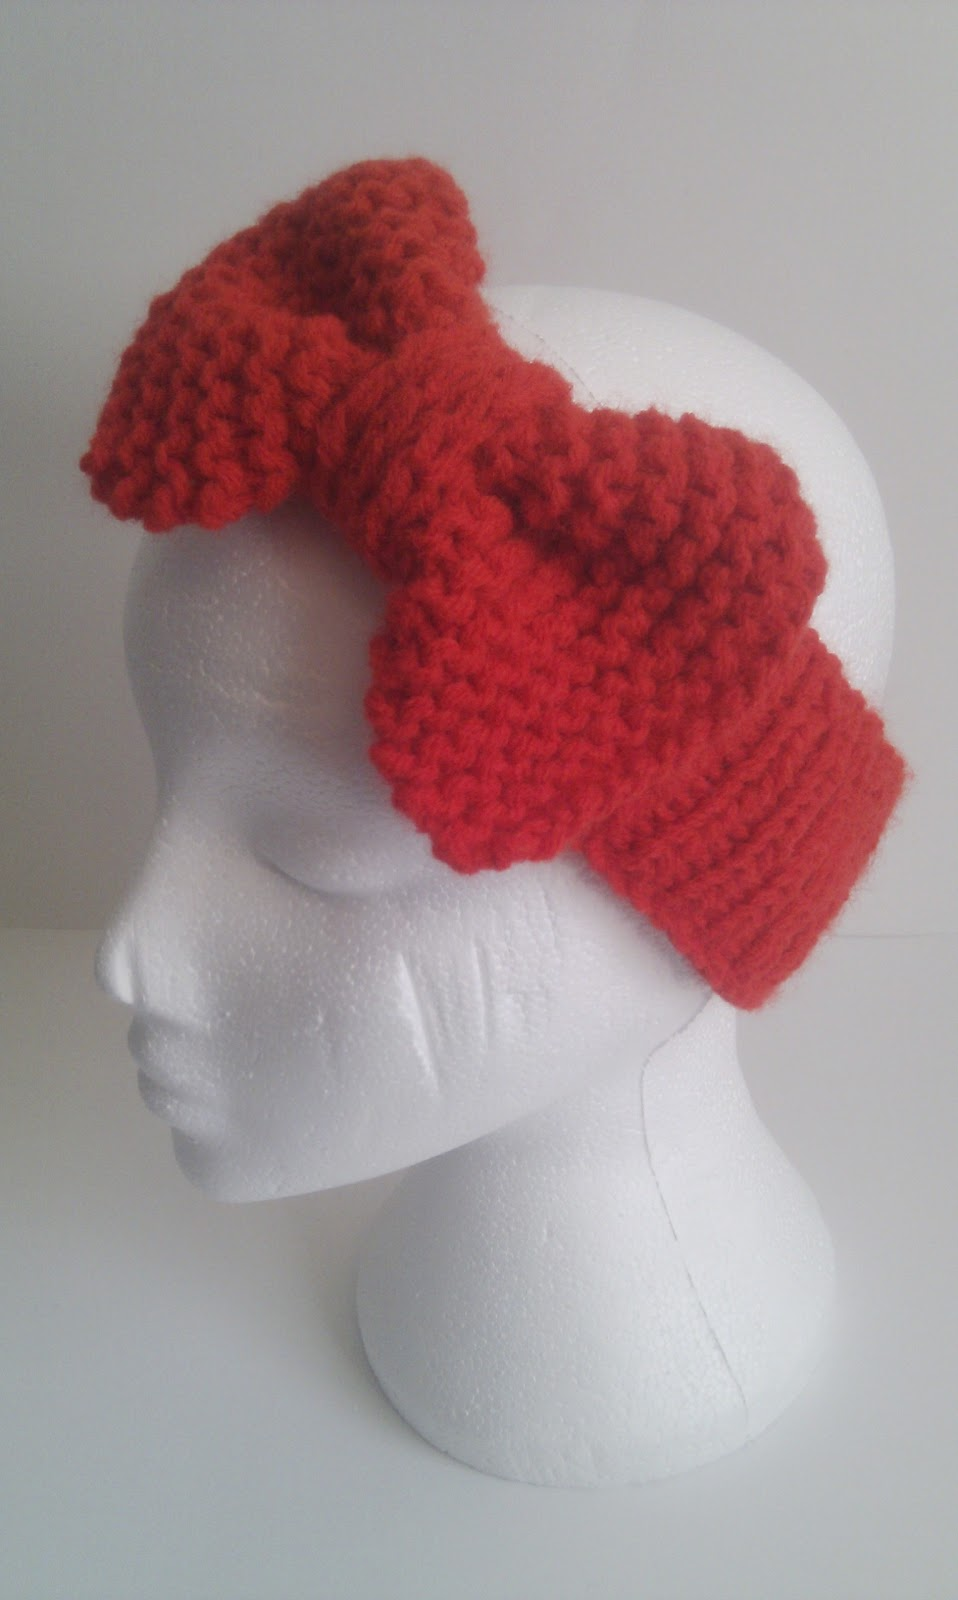 Free Knitting Pattern Headband : Musings of a knit-a-holic from Wales: Free Knitting Pattern: Beau Bow Headband